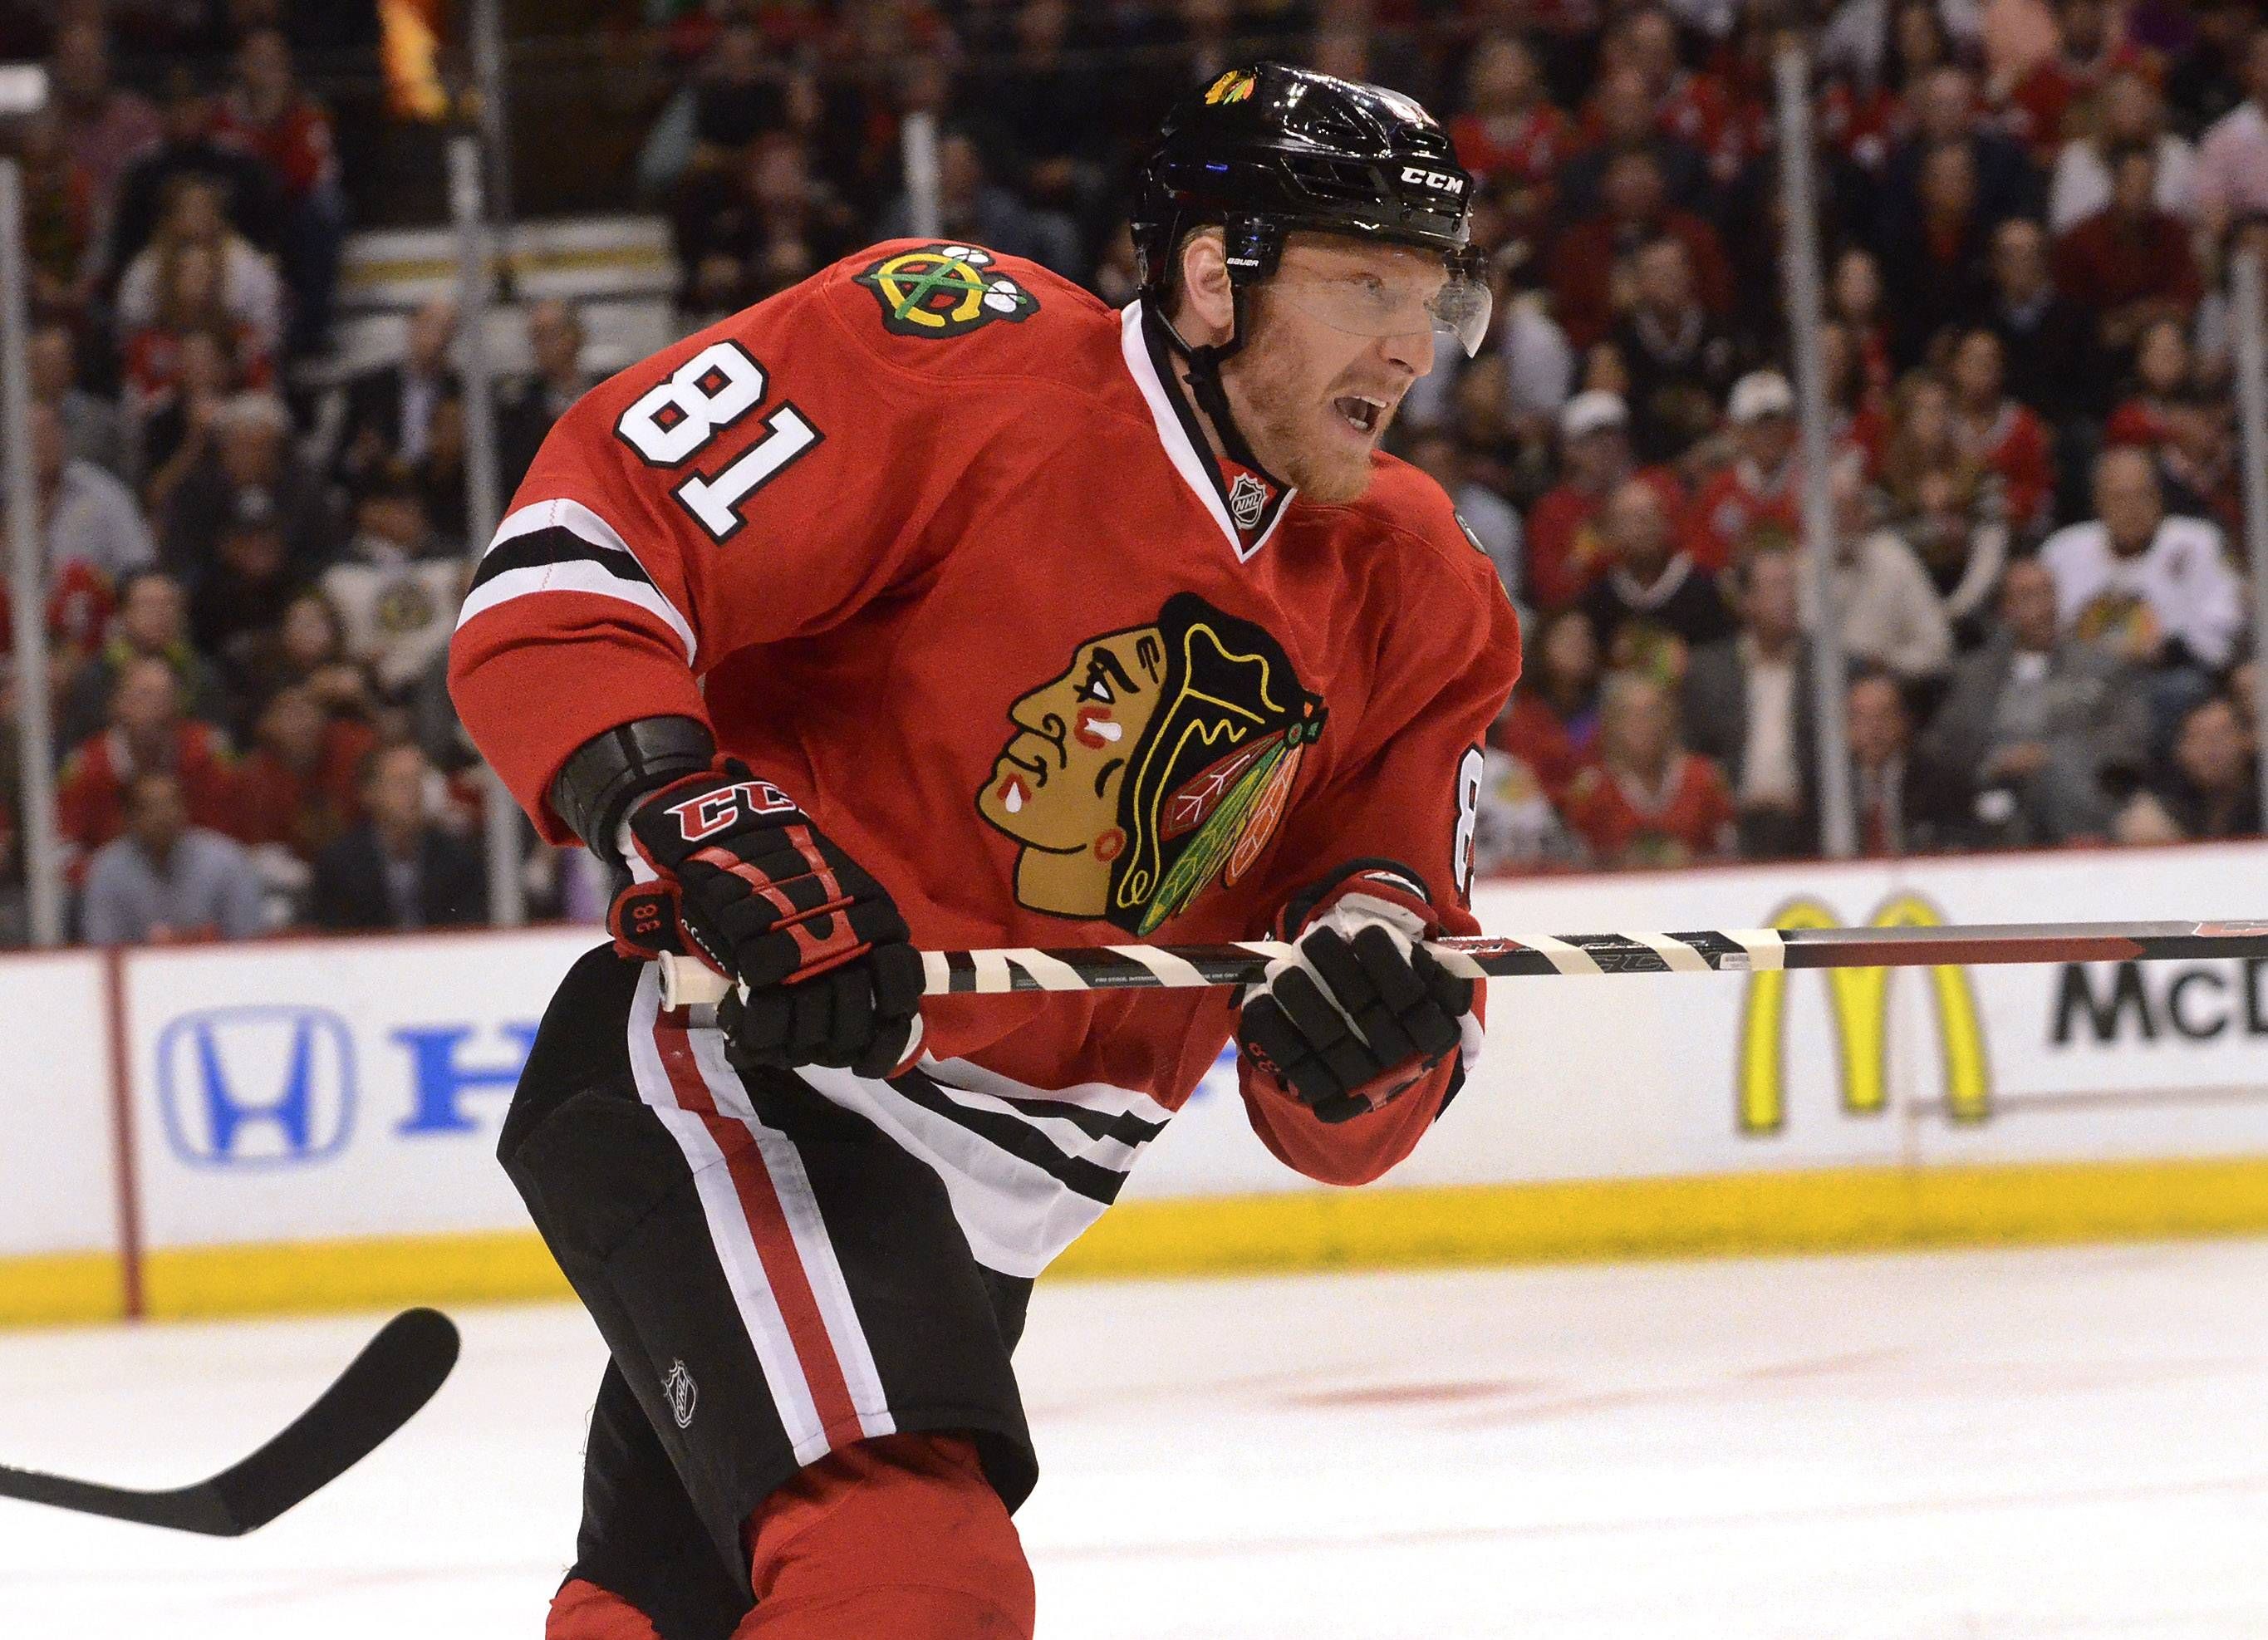 It's also nice to know that Marian Hossa won't be leaving the Blackhawks anytime soon, says Mike Spellman.